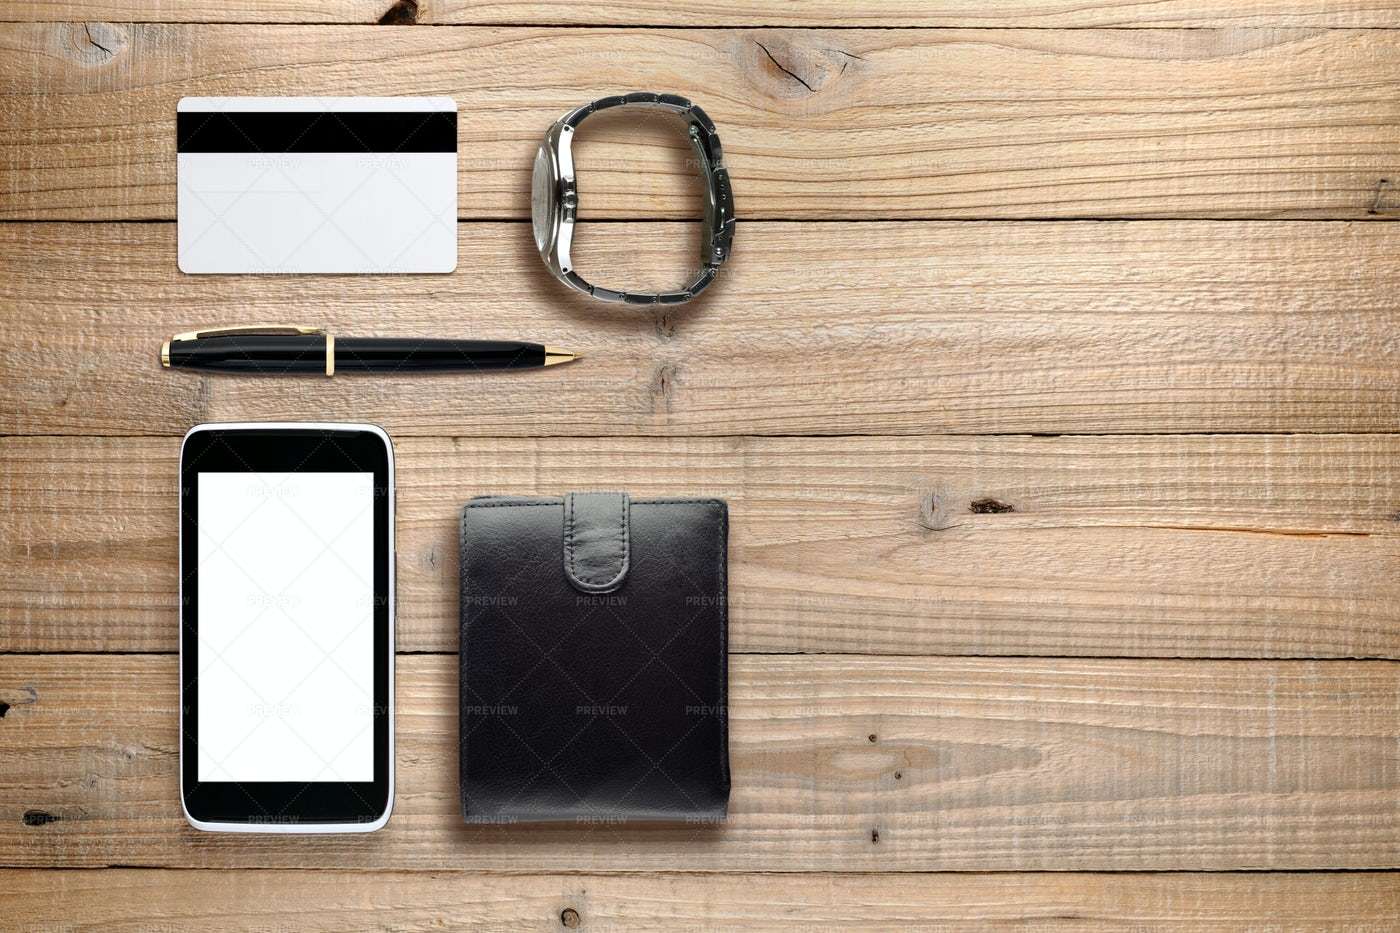 Personal Accessories And Objects: Stock Photos